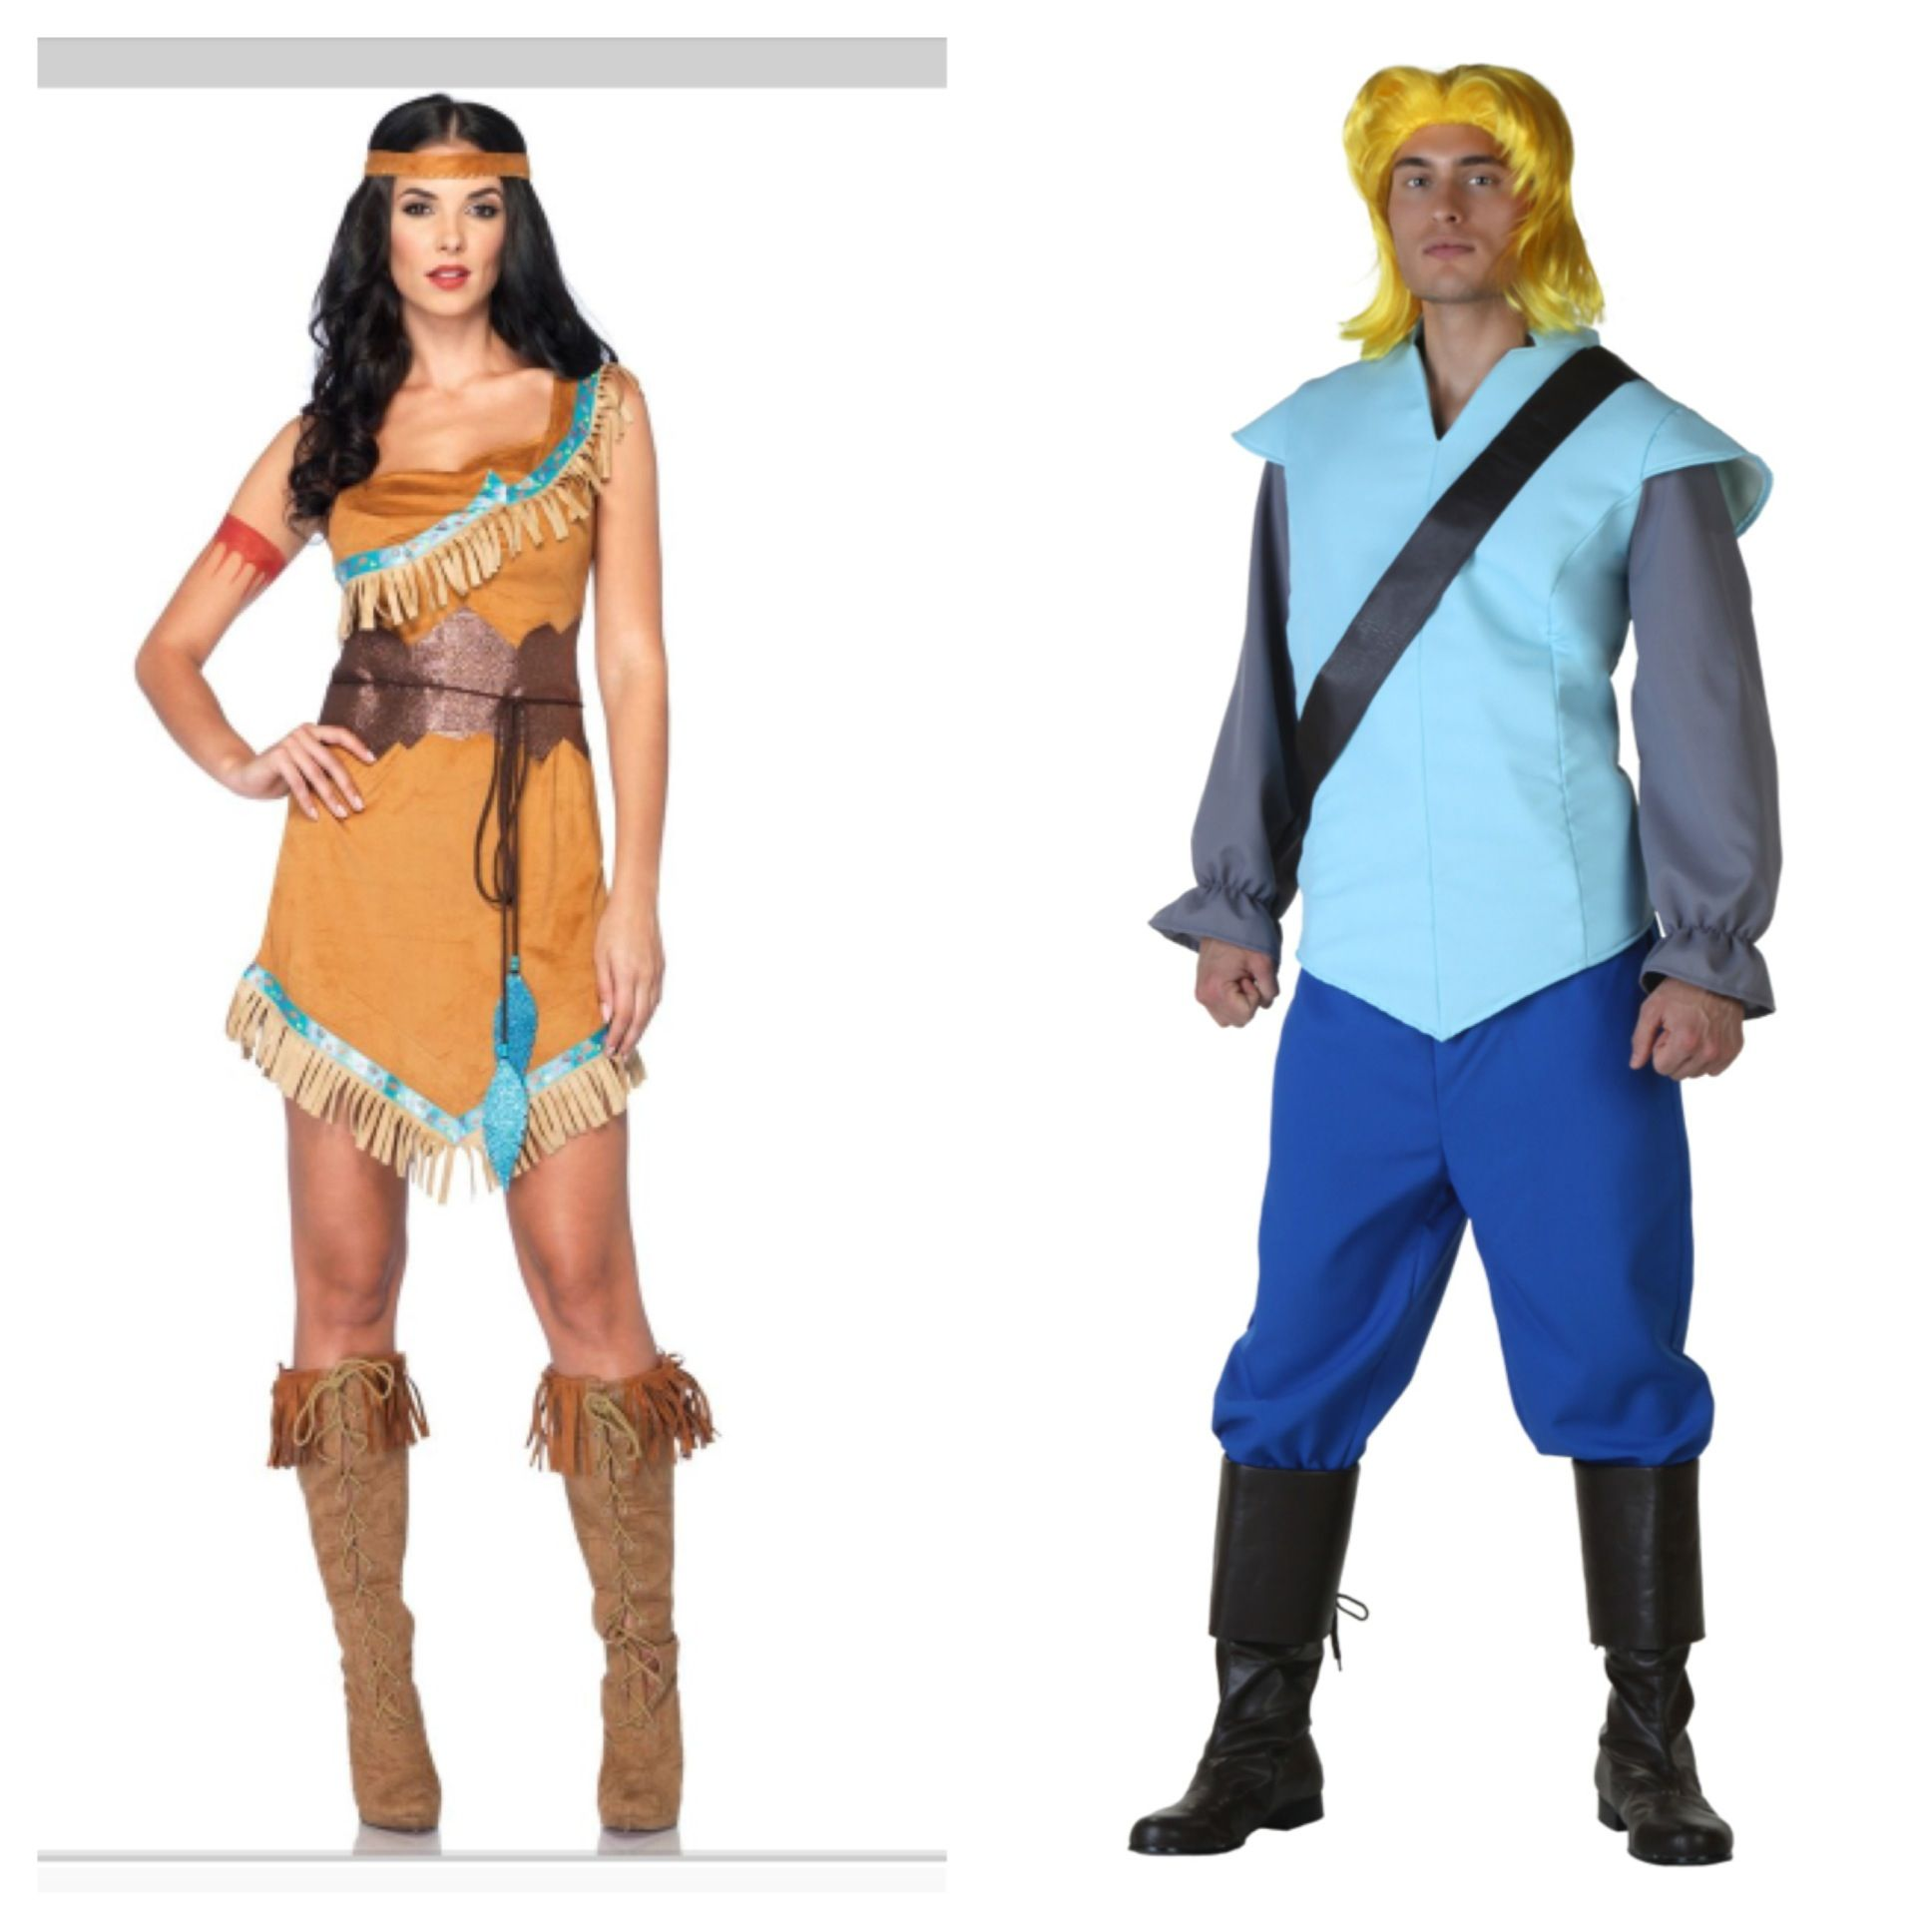 pocahontas and john smith couples costume costume party pinterest. Black Bedroom Furniture Sets. Home Design Ideas